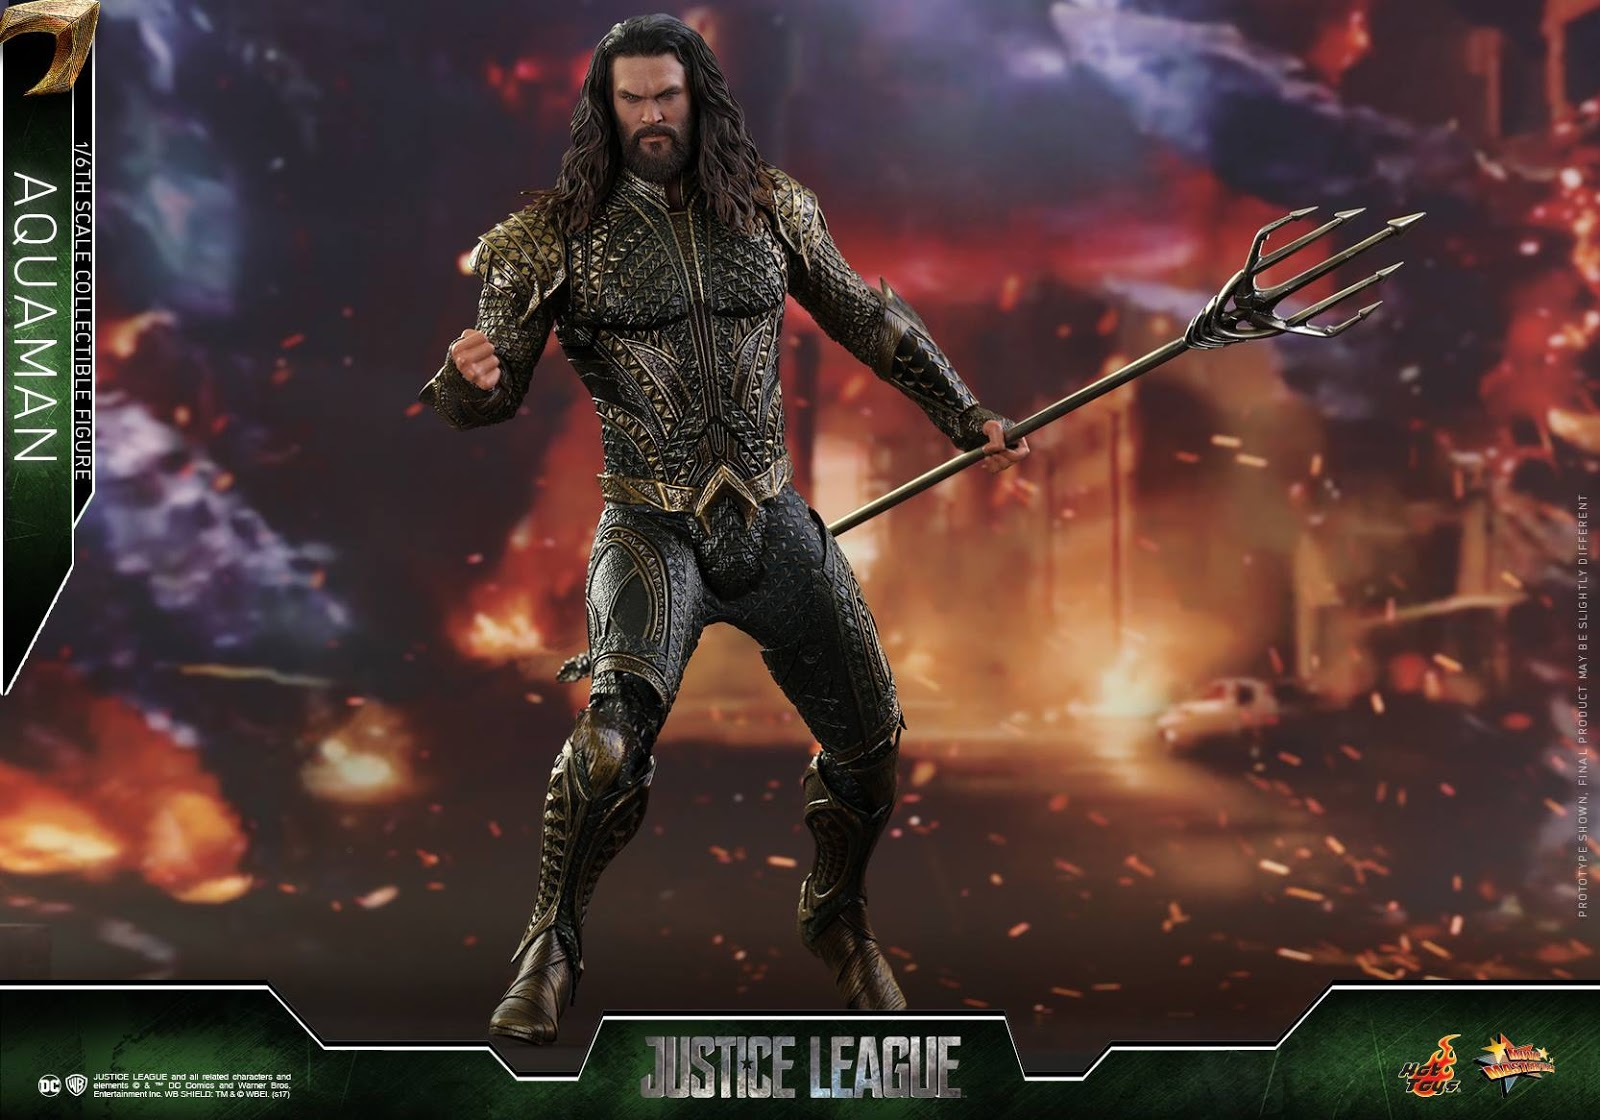 Action Figures: Marvel, DC, etc. - Página 5 Aquaman_15